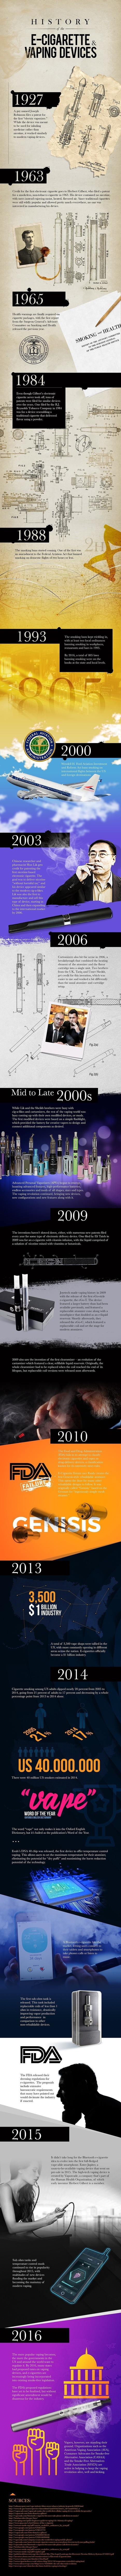 History of E-Cigarettes and Vaping Devices | All Infographics | Scoop.it